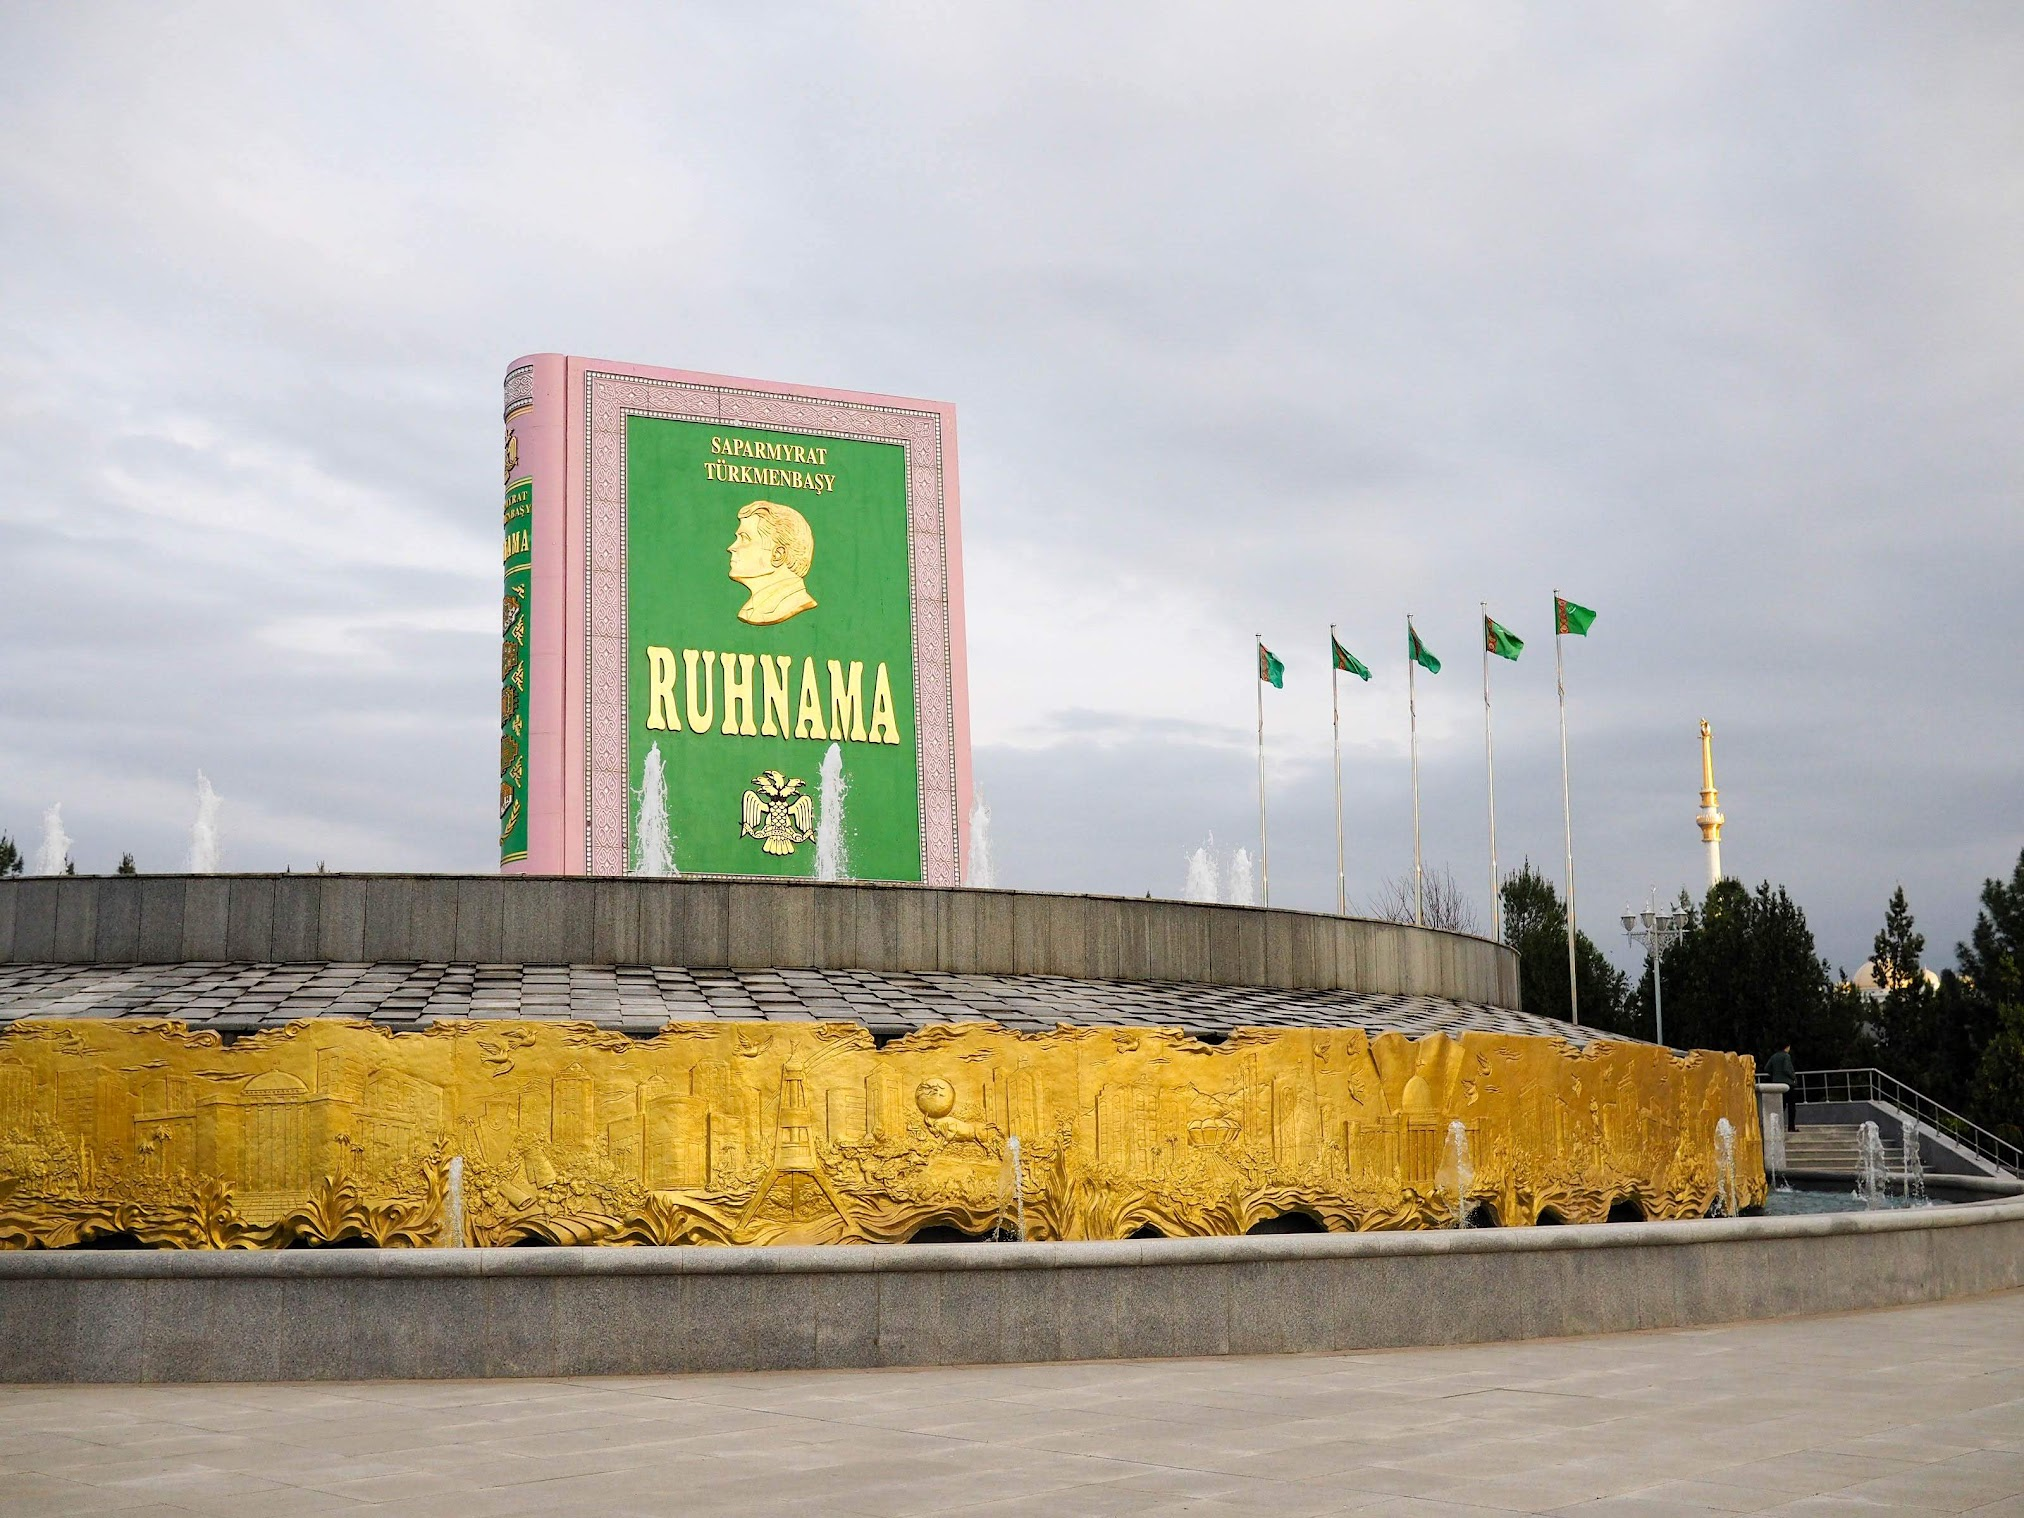 Ruhnama, one of the weird Turkmenistan facts